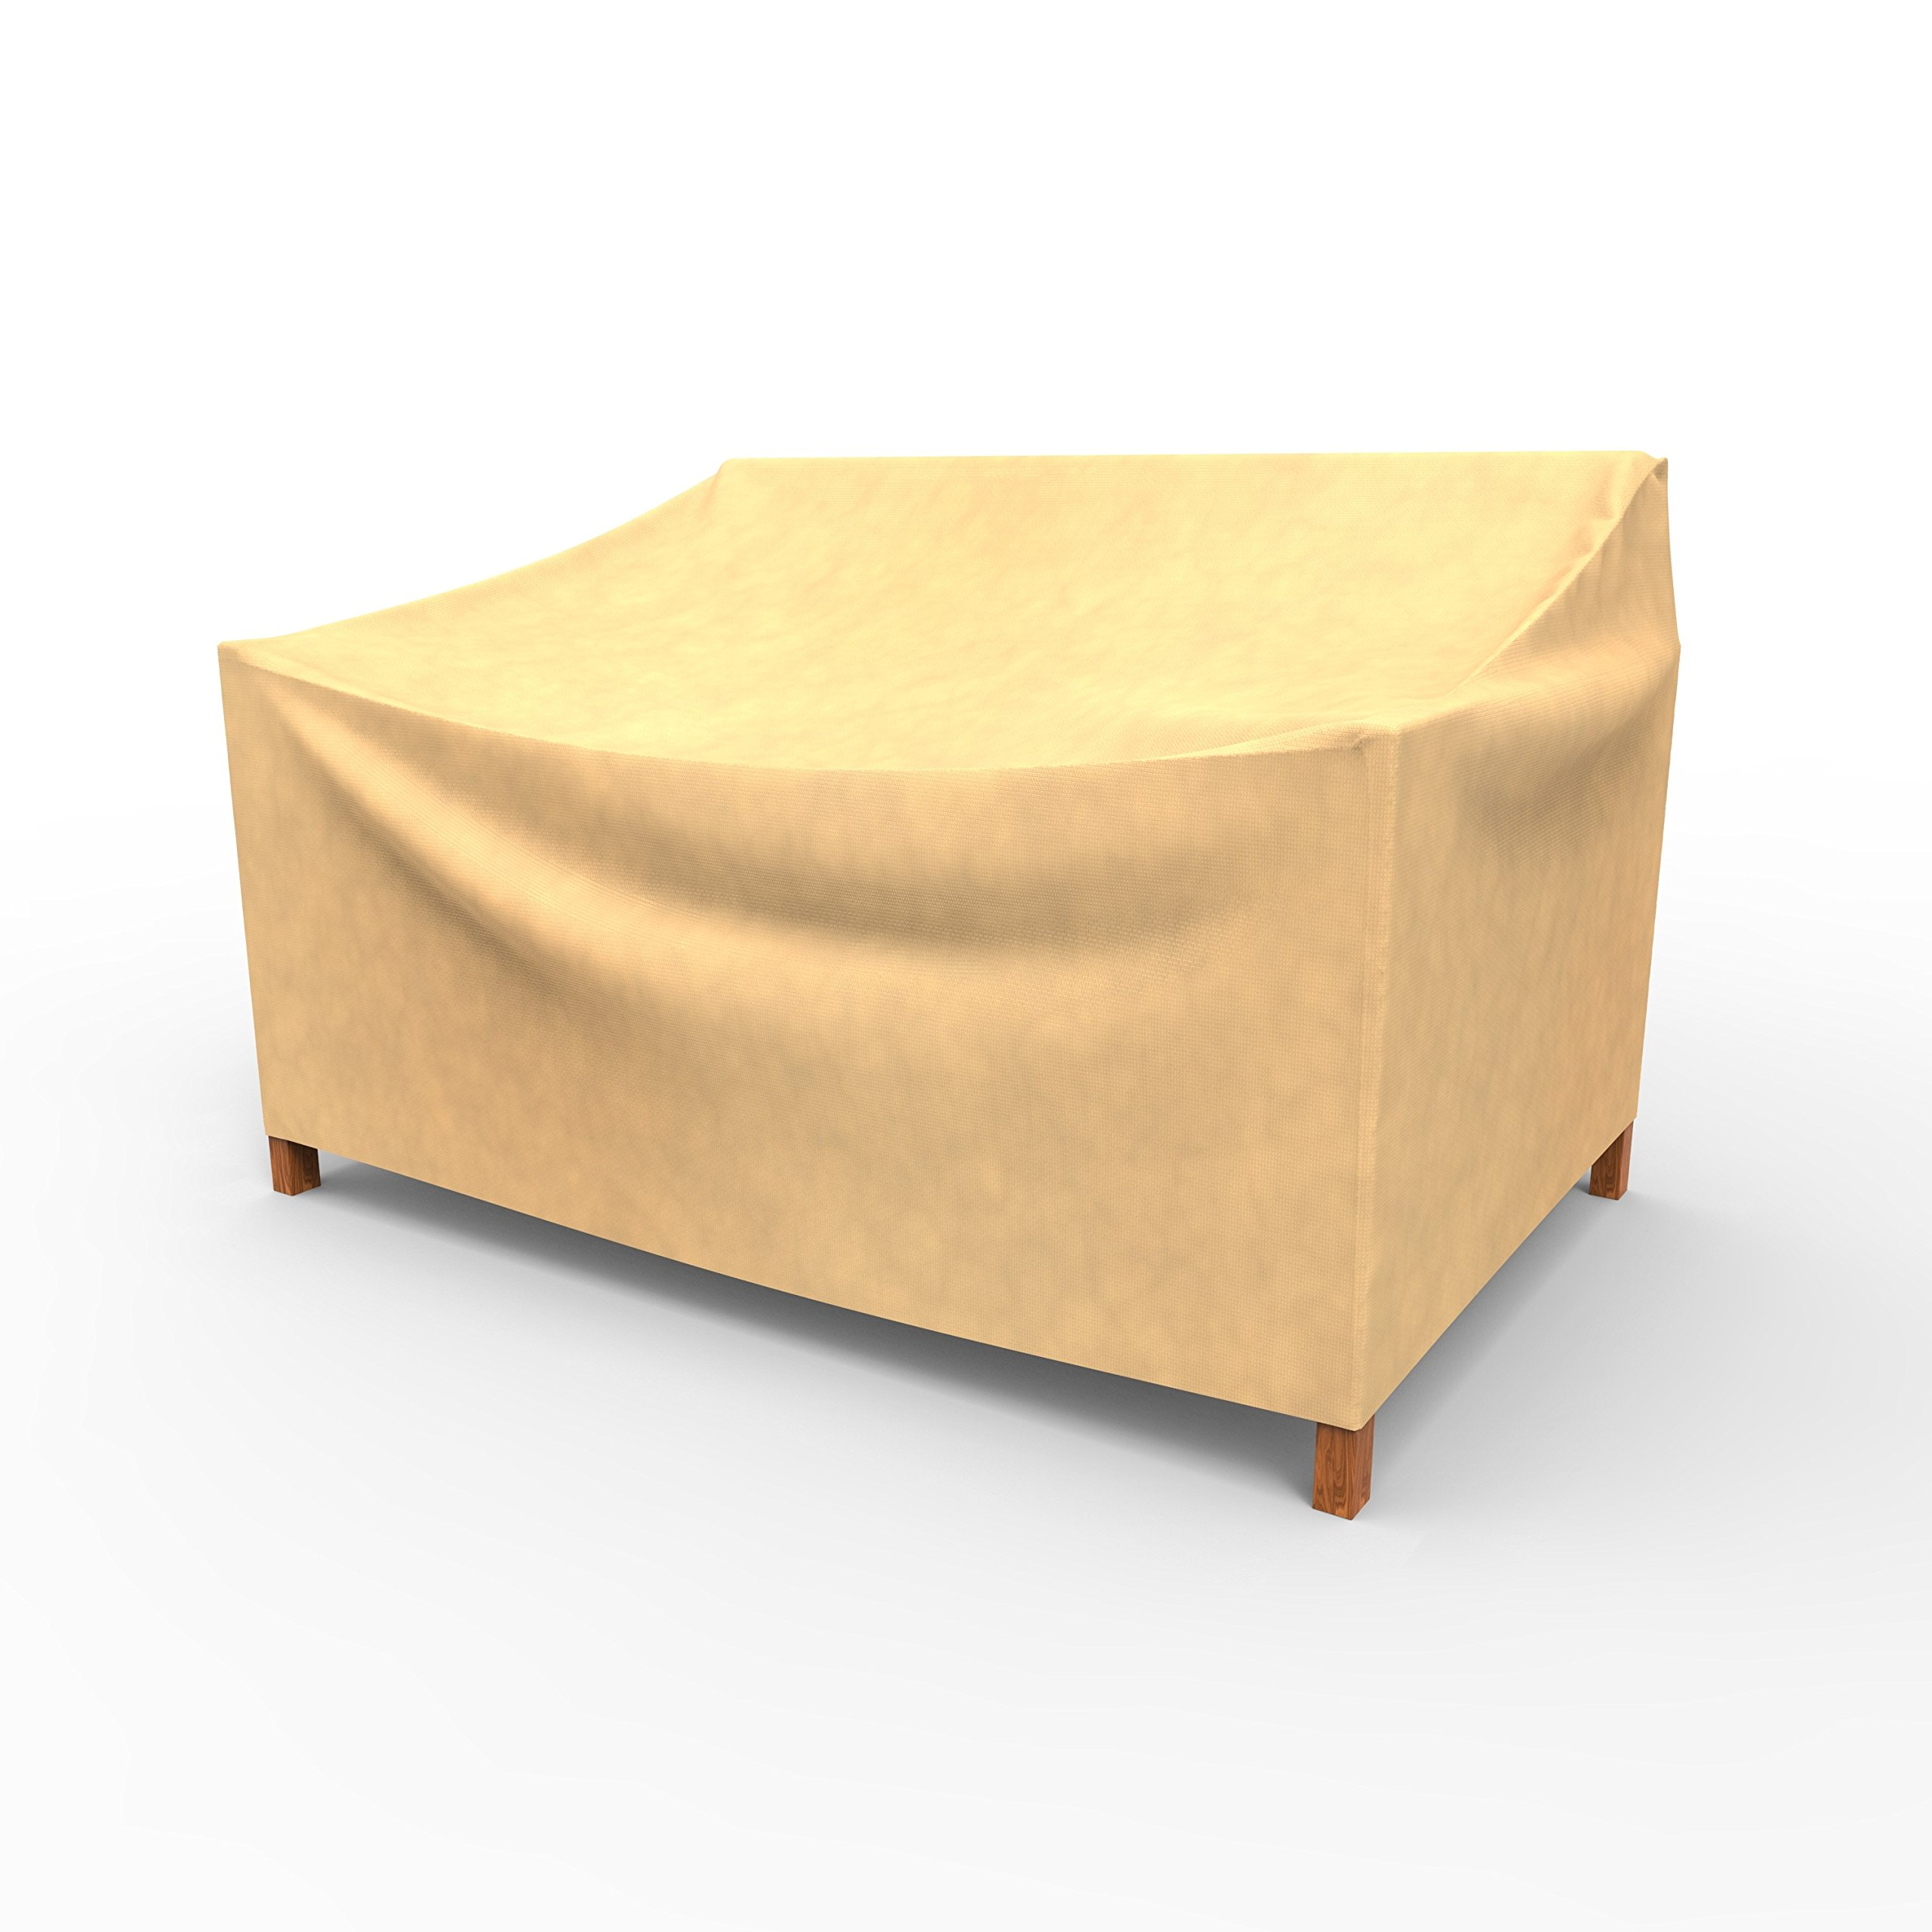 EmpirePatio Glider Covers 26 in High - Nutmeg